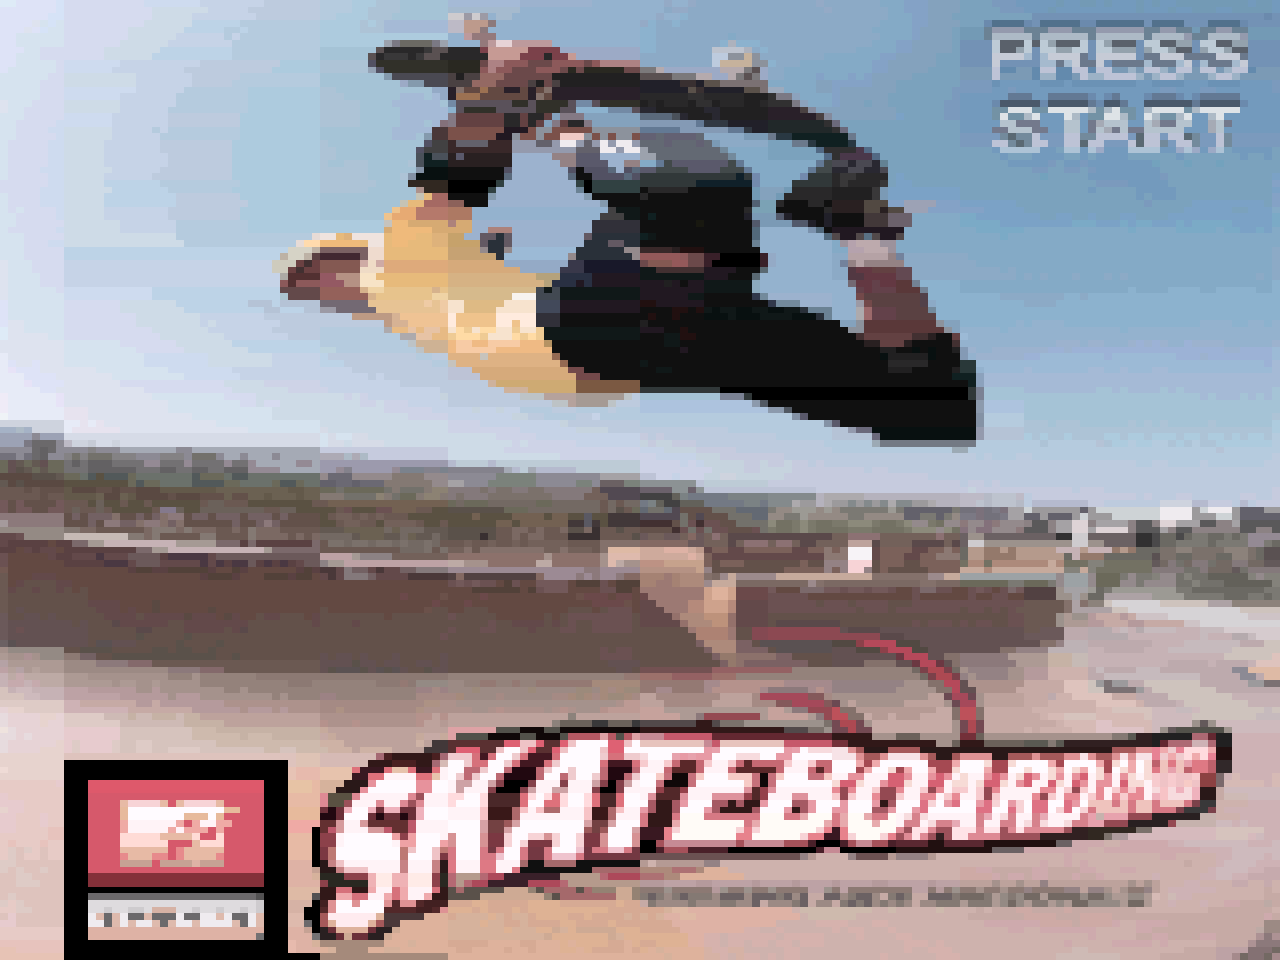 https://s3.eu-west-3.amazonaws.com/games.anthony-dessalles.com/MTV Sports Skateboarding featuring Andy MacDonald GBC 2020 - Screenshots/MTV Sports Skateboarding featuring Andy MacDonald-201115-140636.png